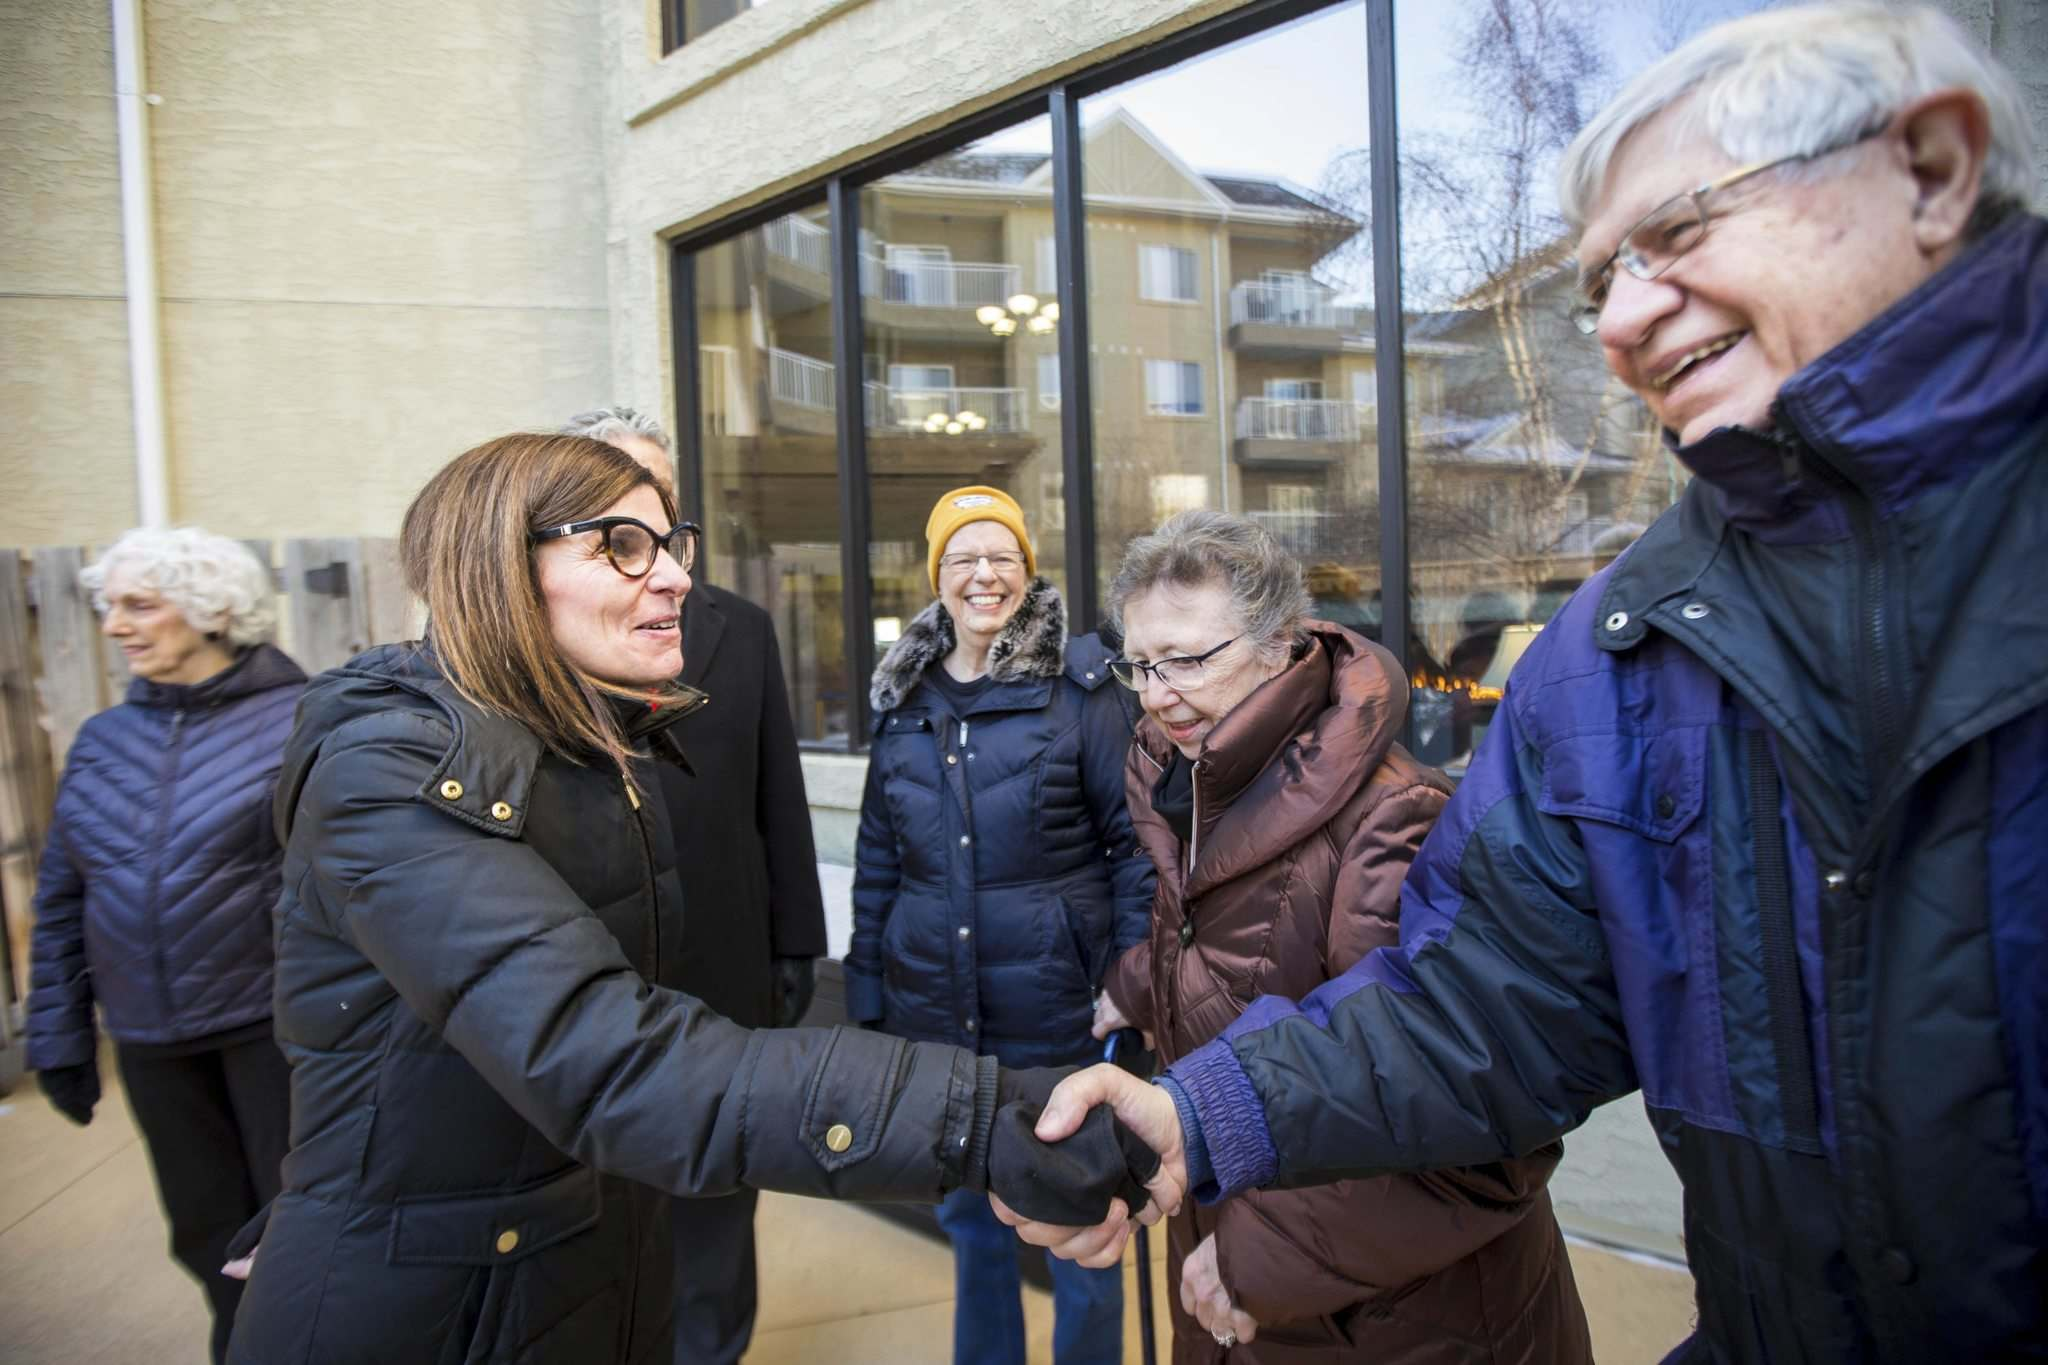 MIKAELA MACKENZIE / WINNIPEG FREE PRESS</p><p>Seniors Minister Filomena Tassi (from left) meets with Dorothy Tallman, Gail Cloutier and Bob Galston in Winnipeg on Monday.</p></p>